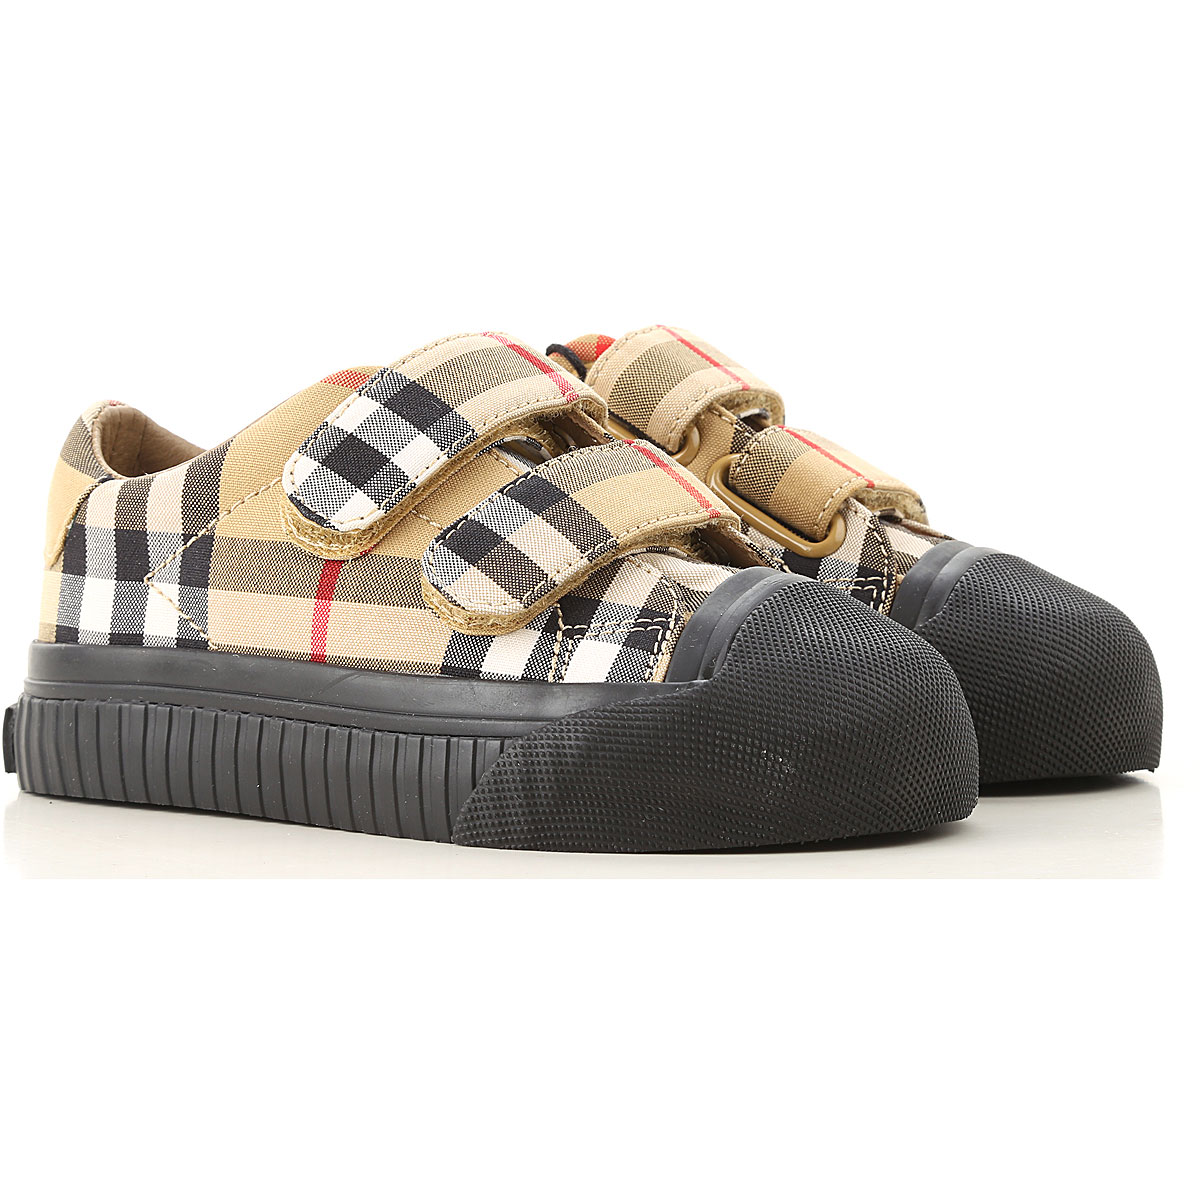 Image of Burberry Kids Shoes for Boys, Antique Yellow, Leather, 2017, 24 26